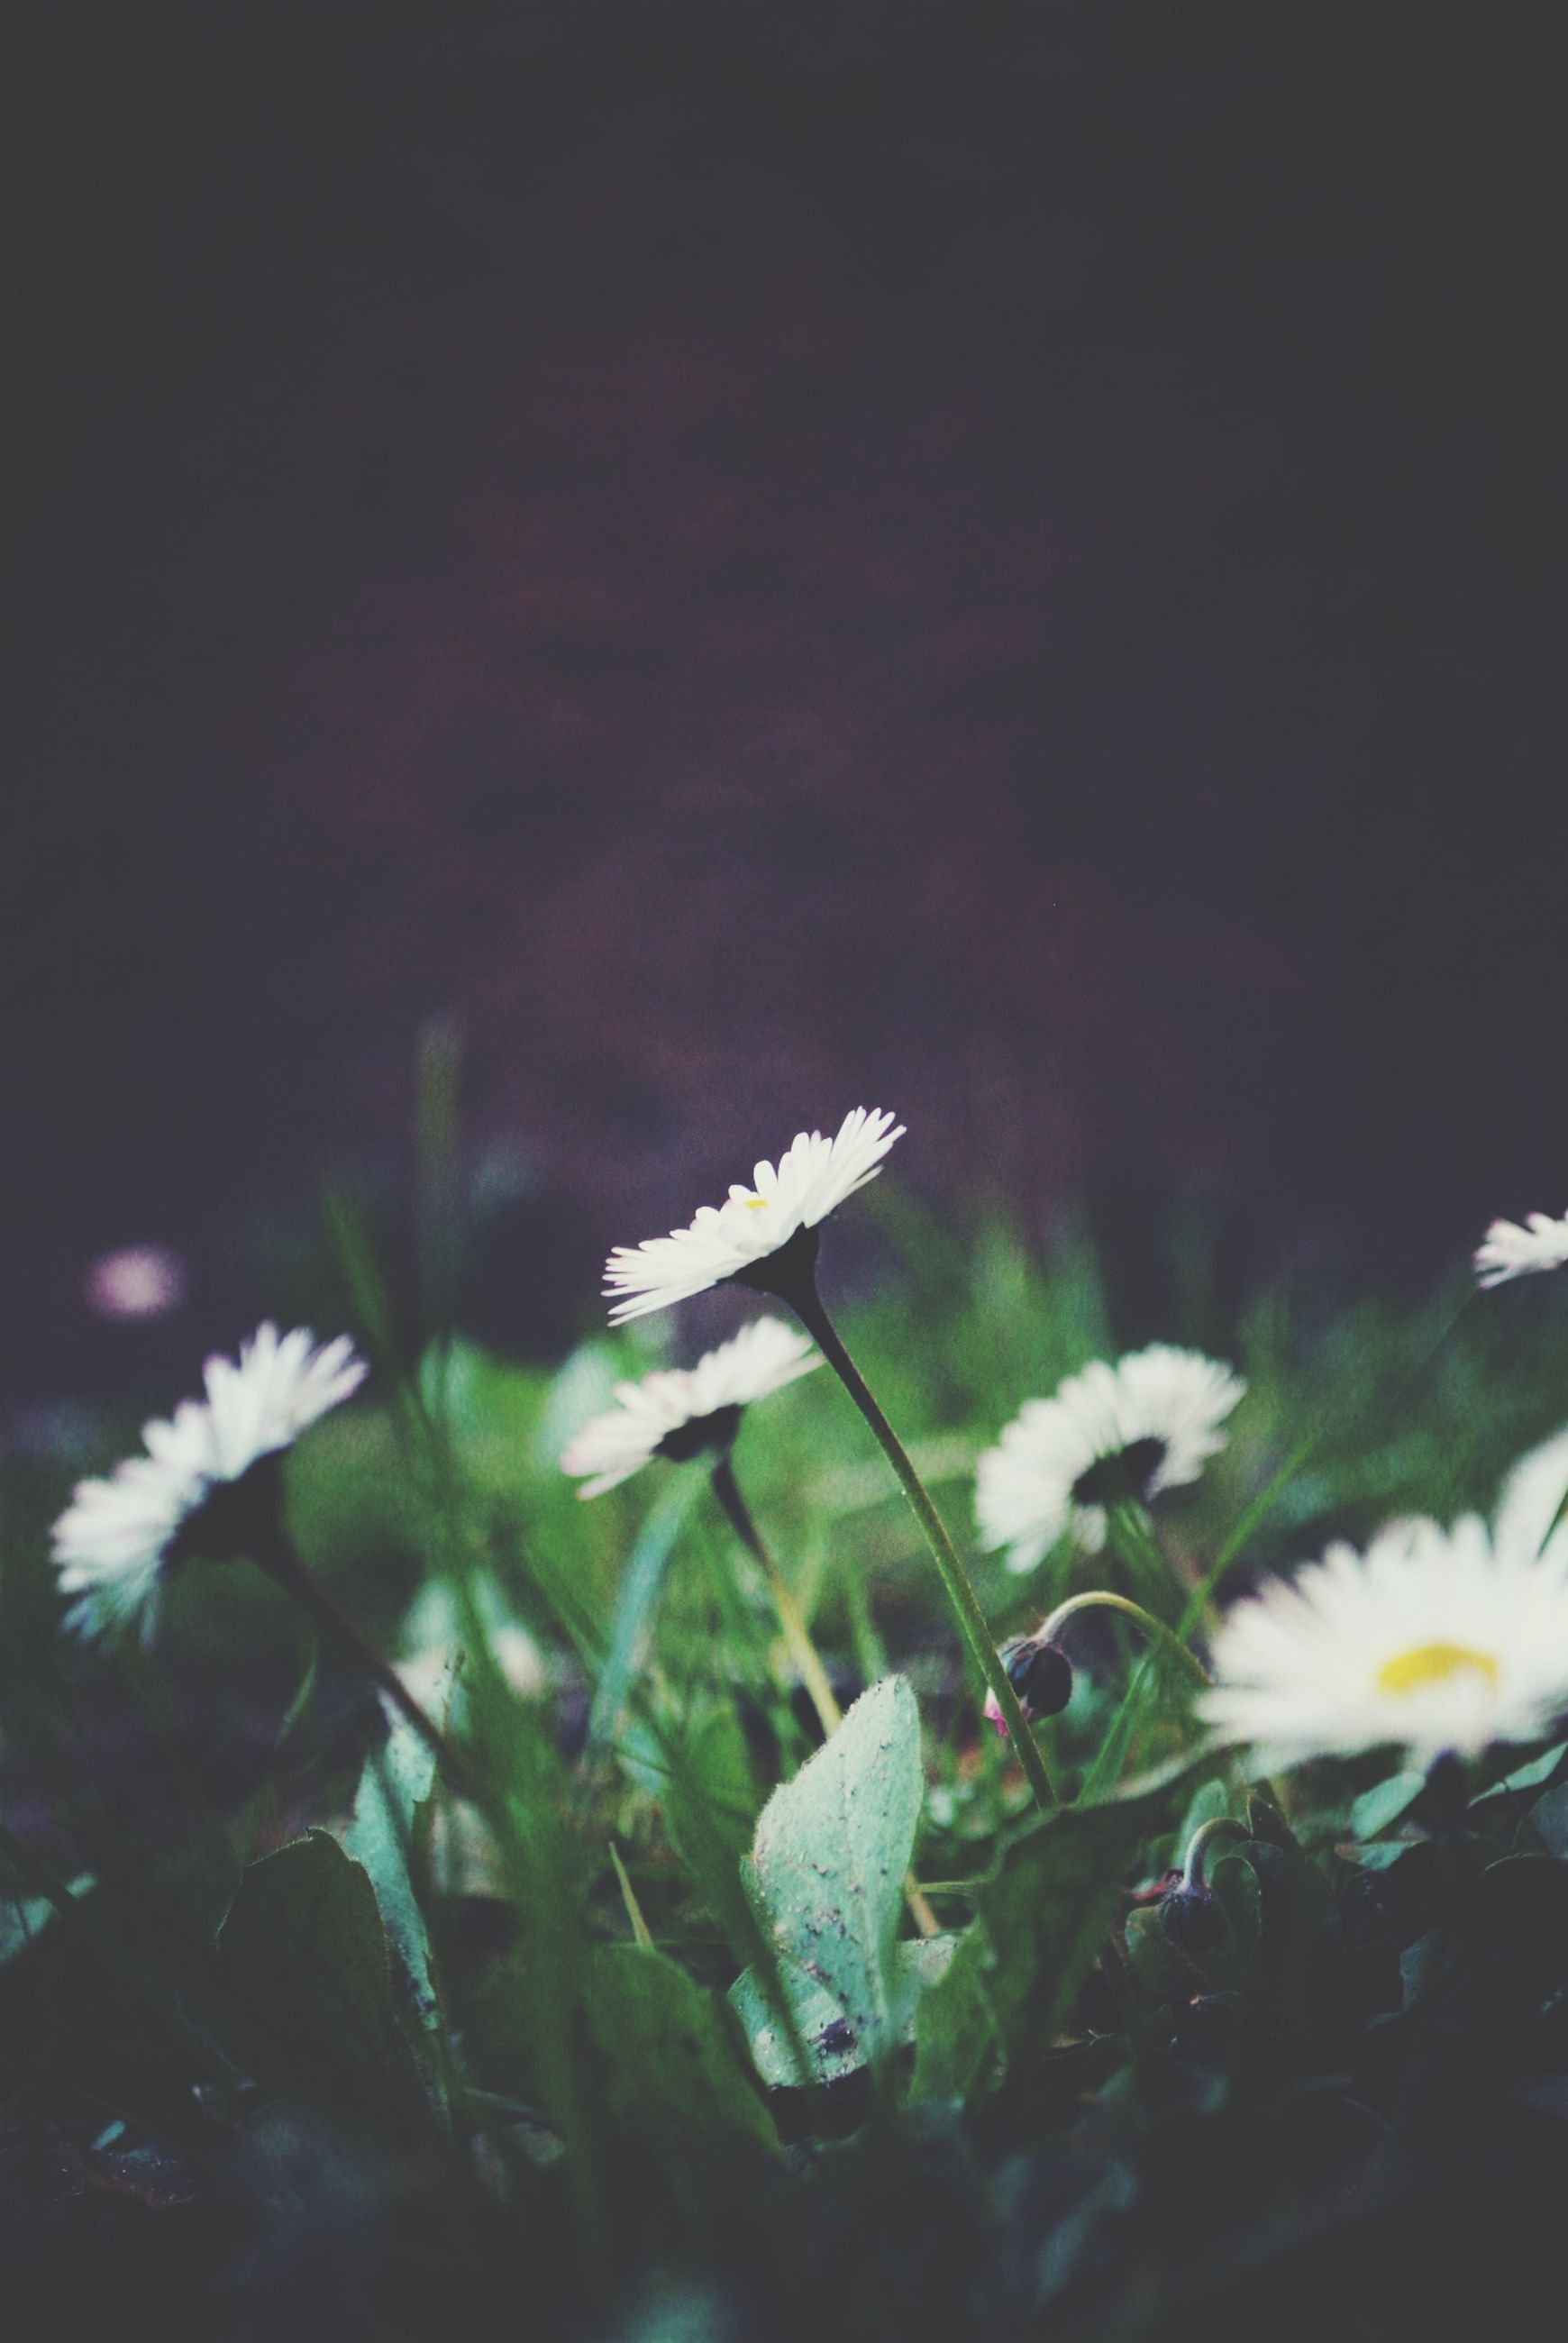 flower, white color, fragility, freshness, petal, growth, flower head, beauty in nature, plant, nature, blooming, stem, close-up, white, daisy, in bloom, focus on foreground, selective focus, pollen, field